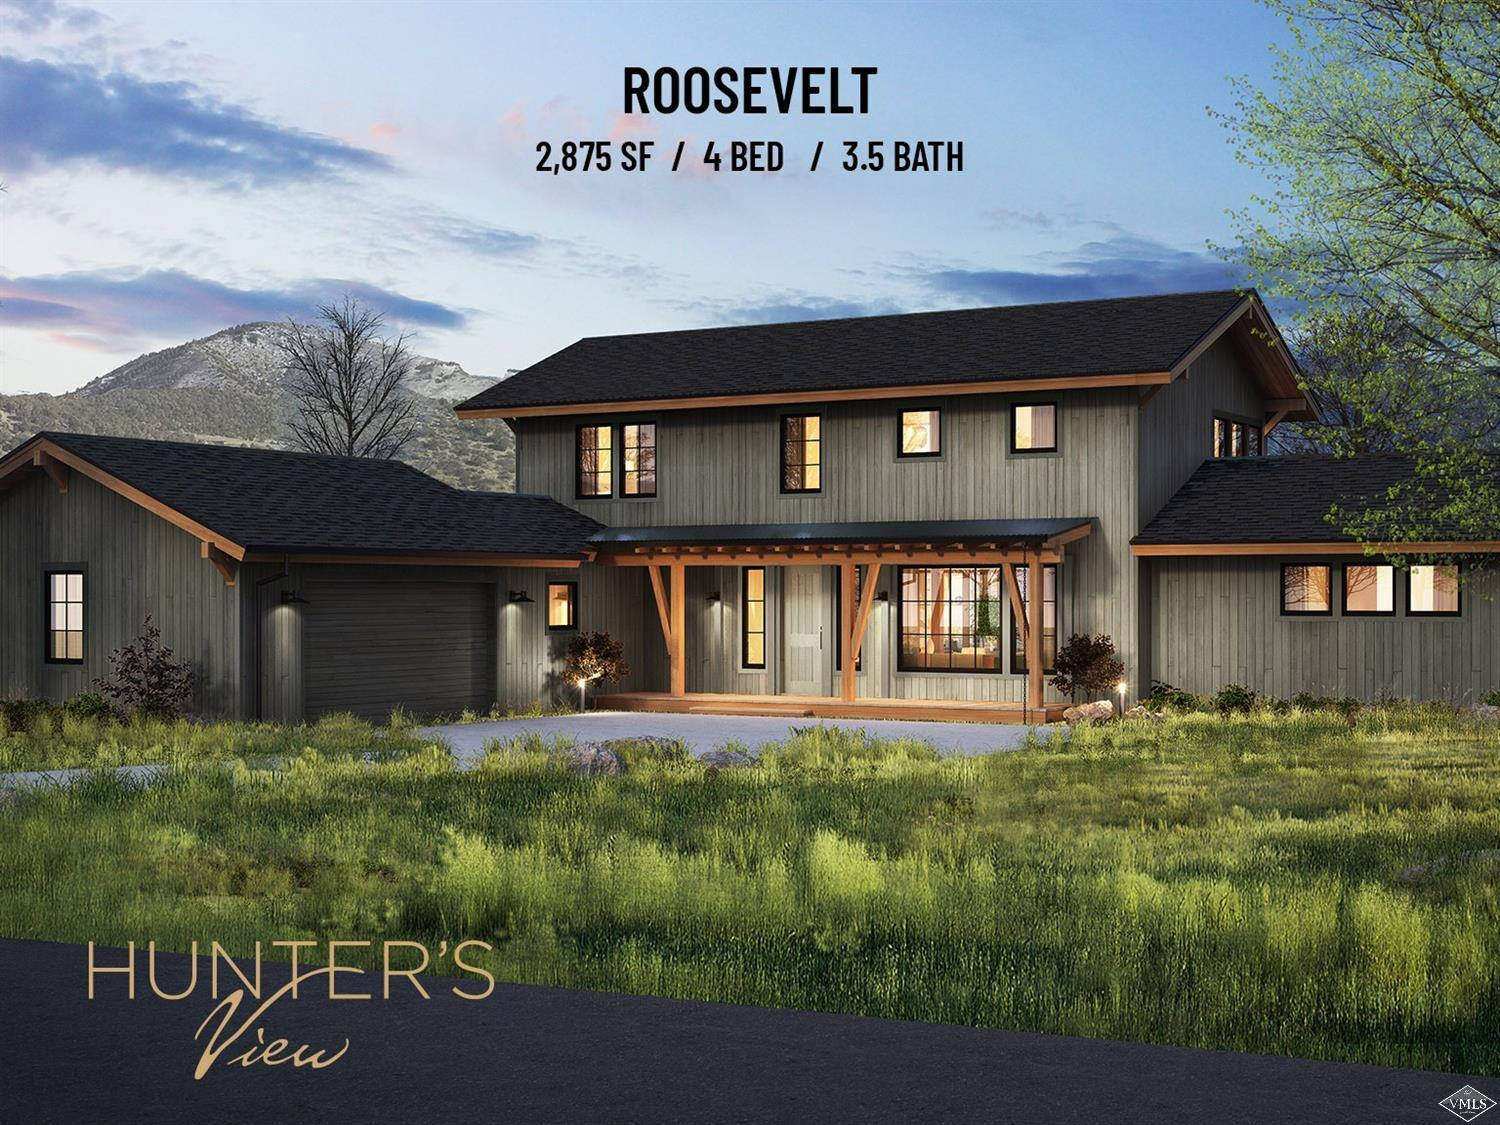 Starting Summer of 2020 - Roosevelt Model - Hunter's View Residences - Nestled on 81 acres, surrounded by pristine wilderness, Hunter's View is Frost Creek's newest real estate offering. Phase 1 (15 homes out of 44) are thoughtfully designed new construction homes, which is perfect combination of personalization and convenience. With 3 unique layouts and numerous additions to choose from, no two residences will be exactly the same.